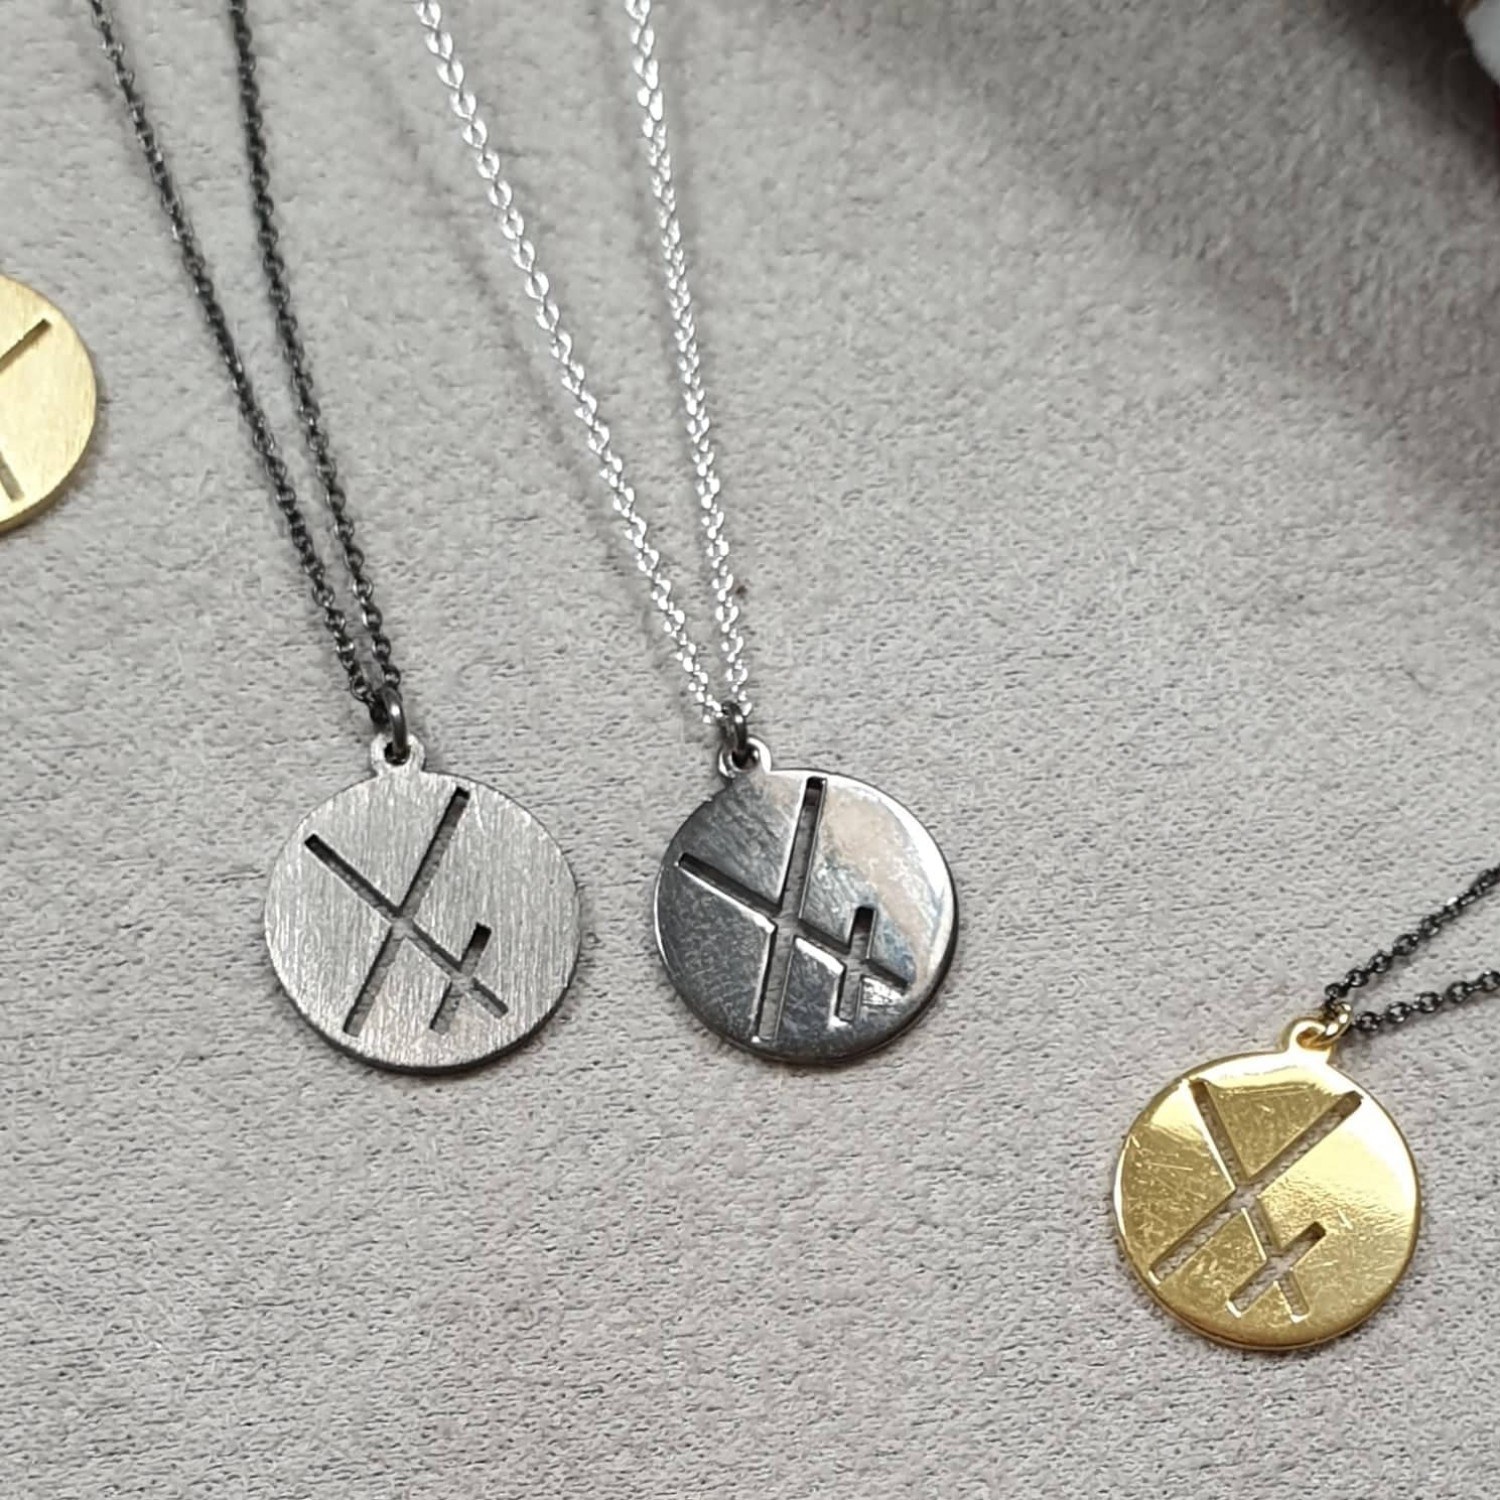 2020 Lucky Charm - XX Pendant Necklace